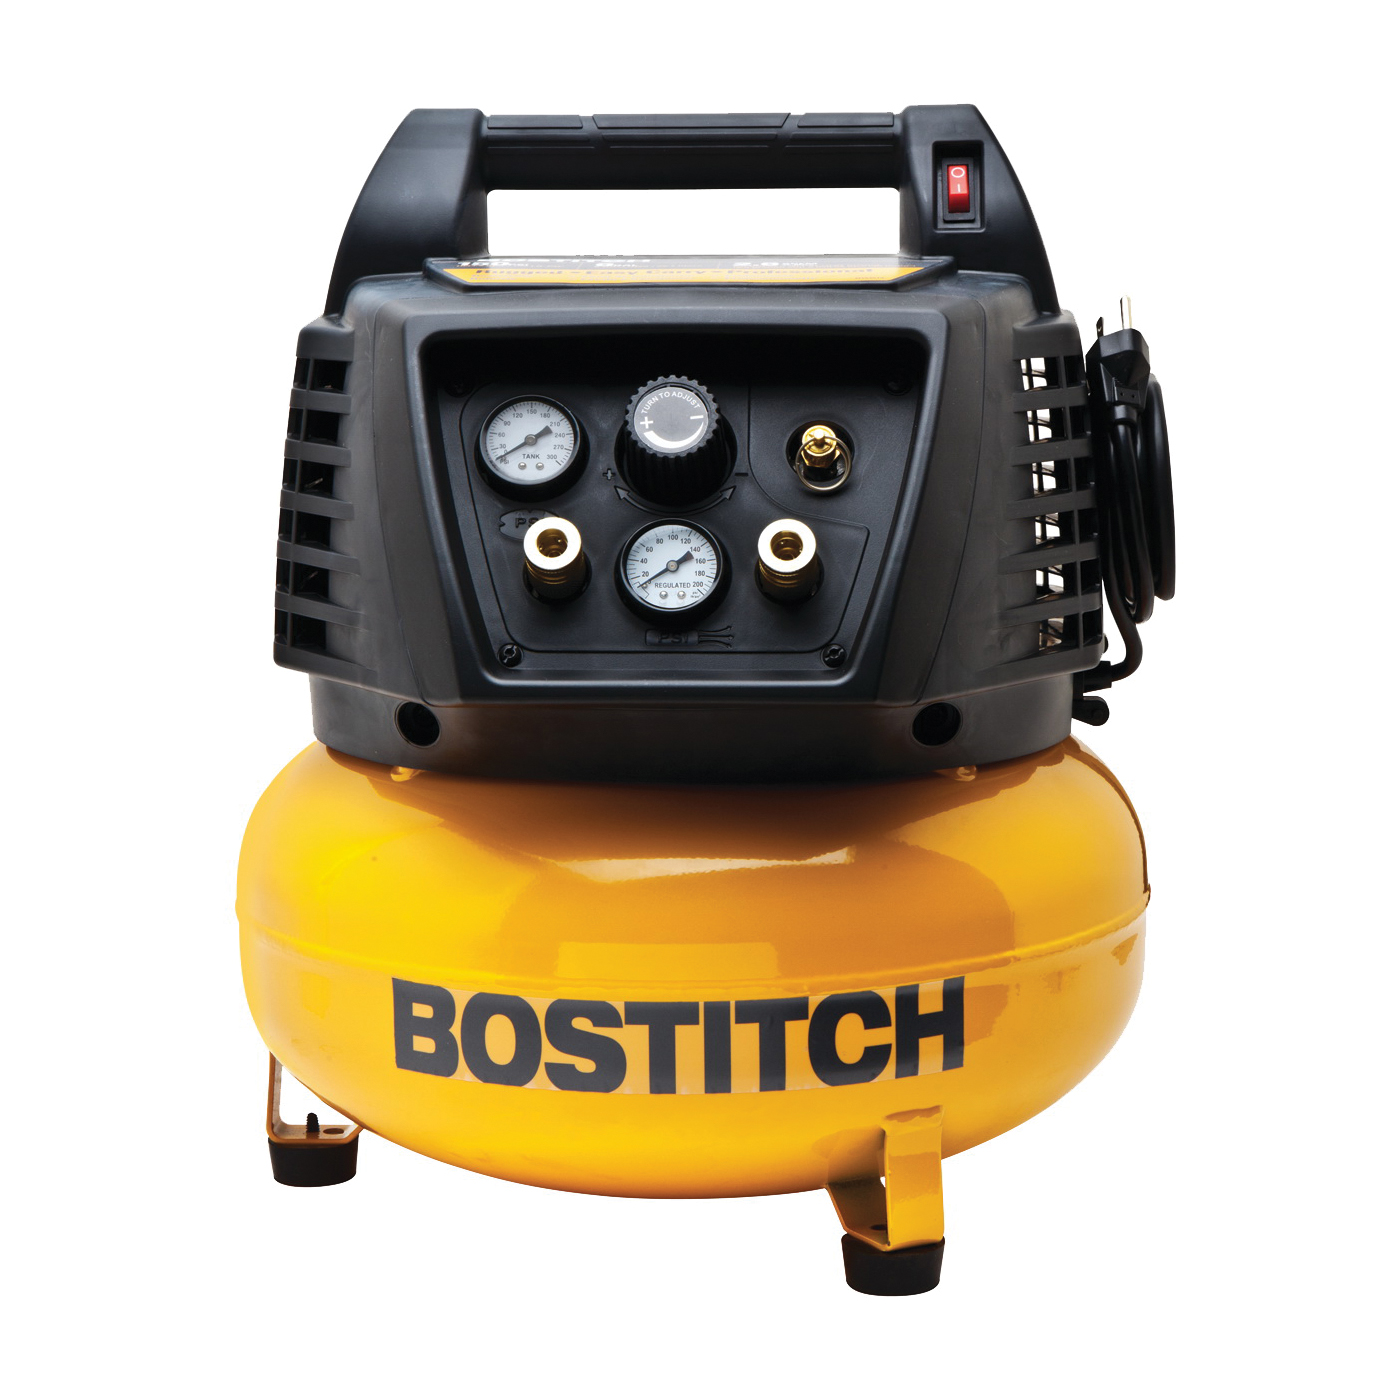 Picture of Bostitch BTFP02012 Air Compressor, 6 gal Tank, 120 V, 90 psi Pressure, 3.7 scfm Air